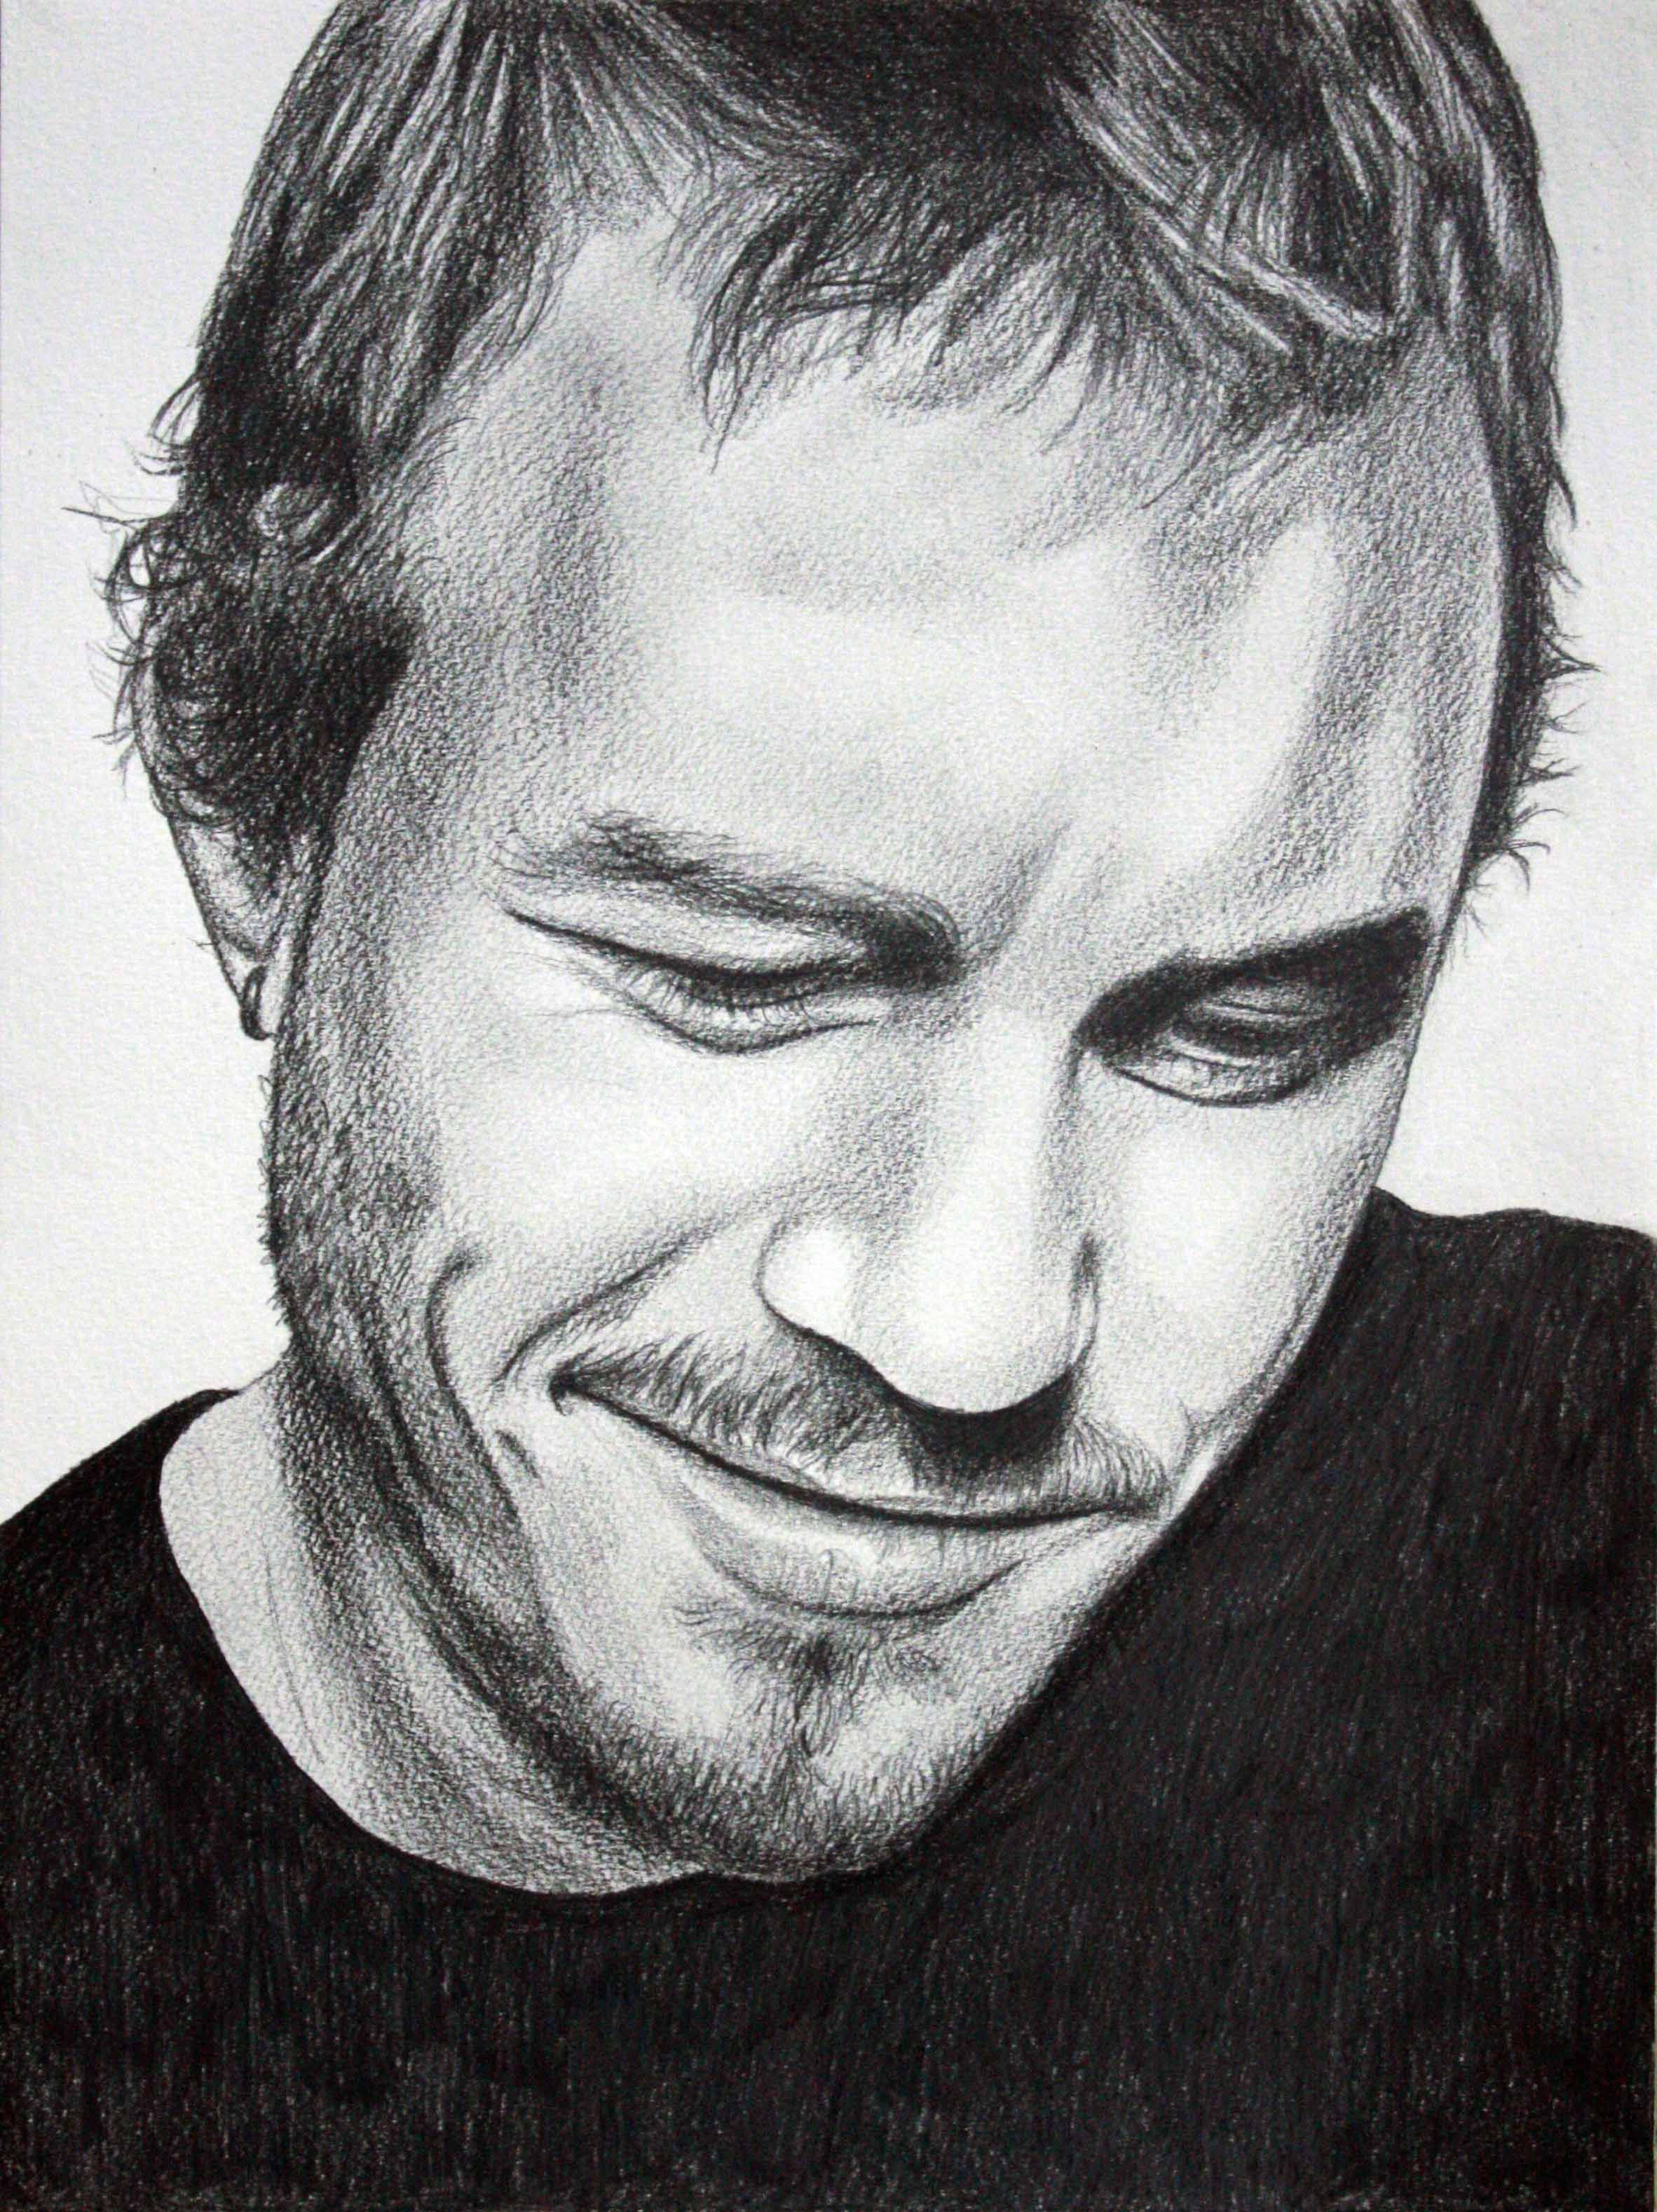 Heath ledger 24cm x 32cm graphite pencil sketch for sale 120 framed janmac creative